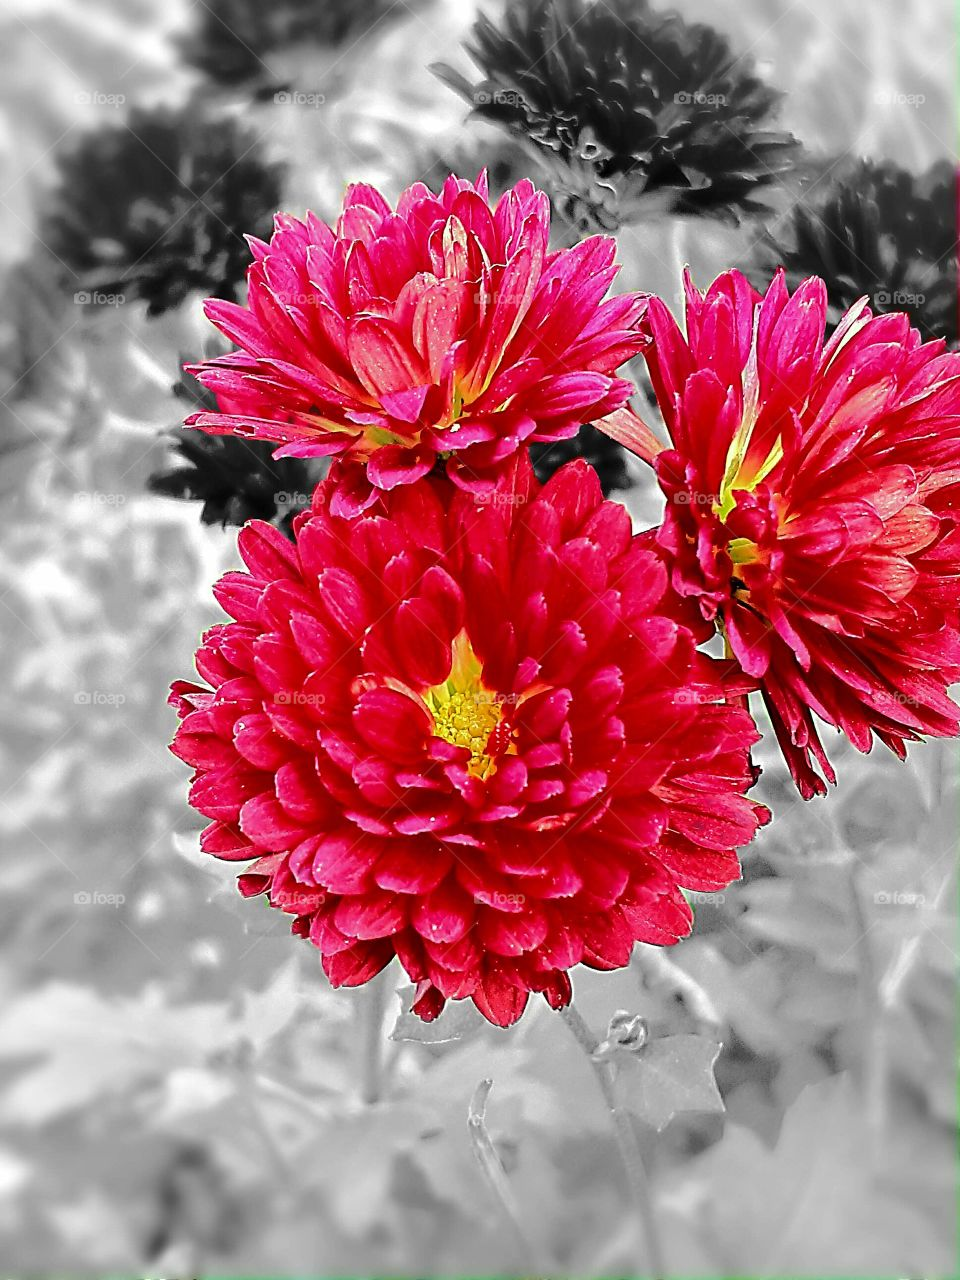 red falls flowers